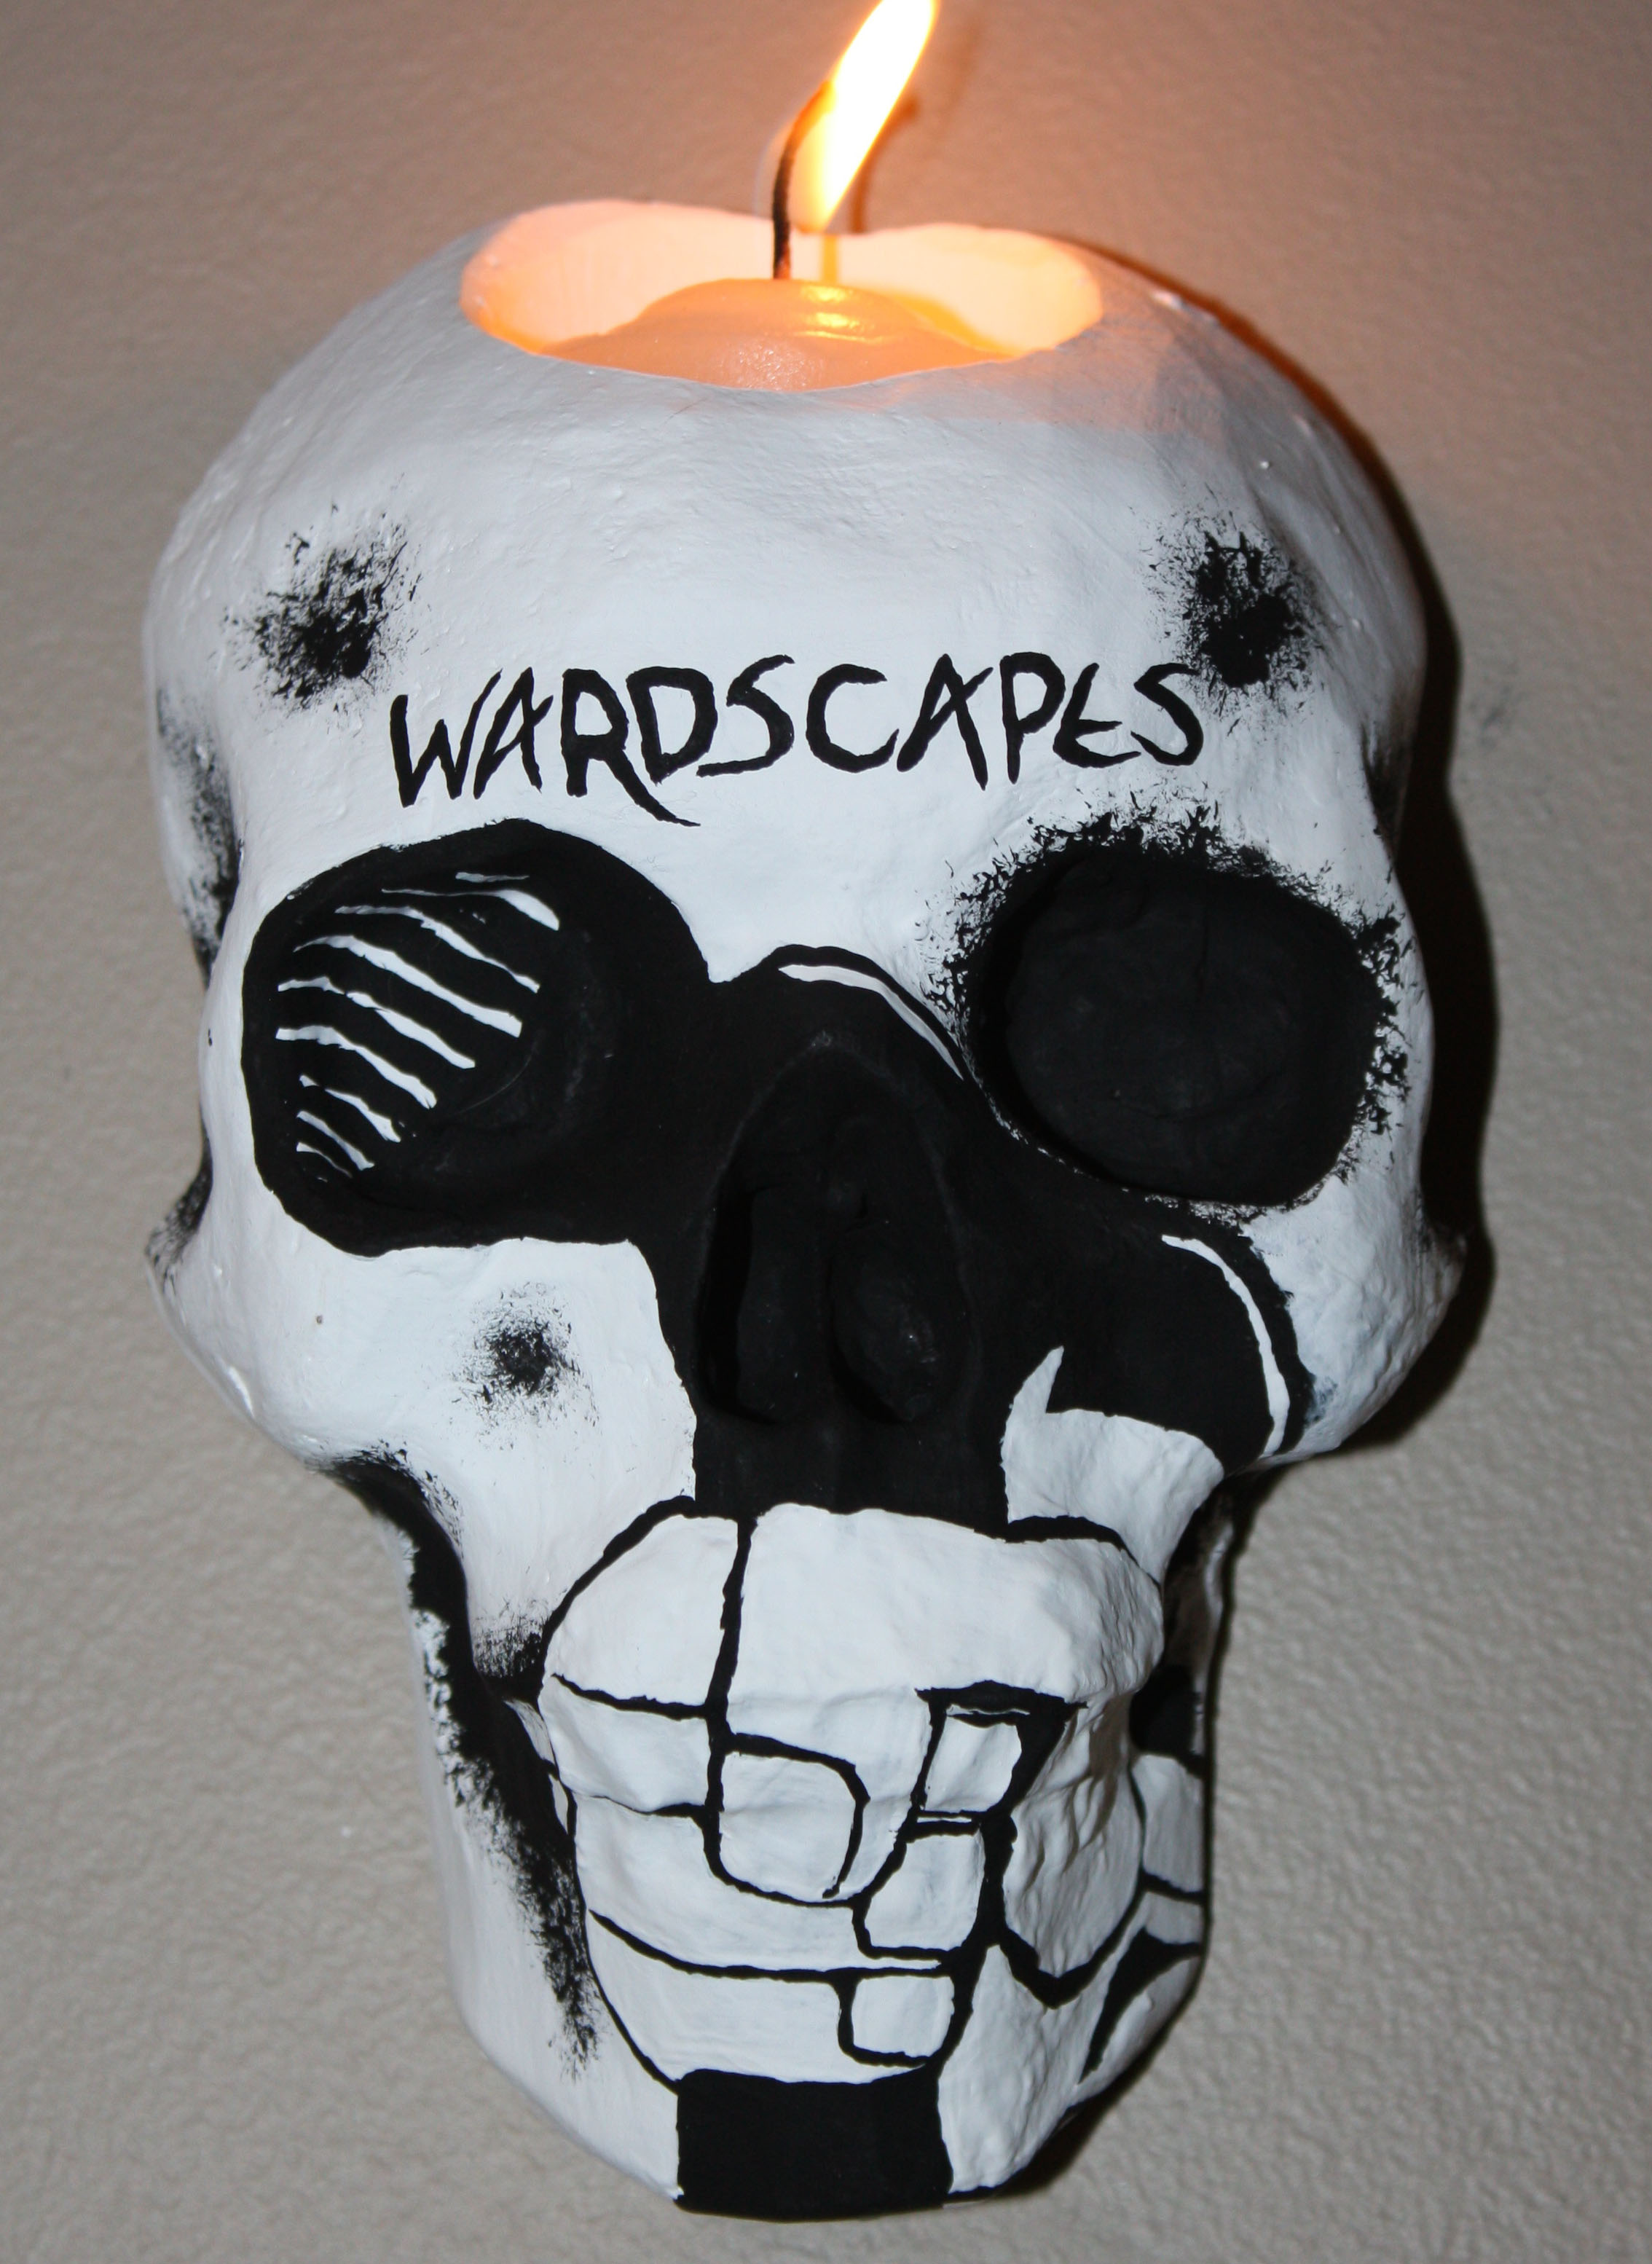 Wardscapes Business Skull Sconce